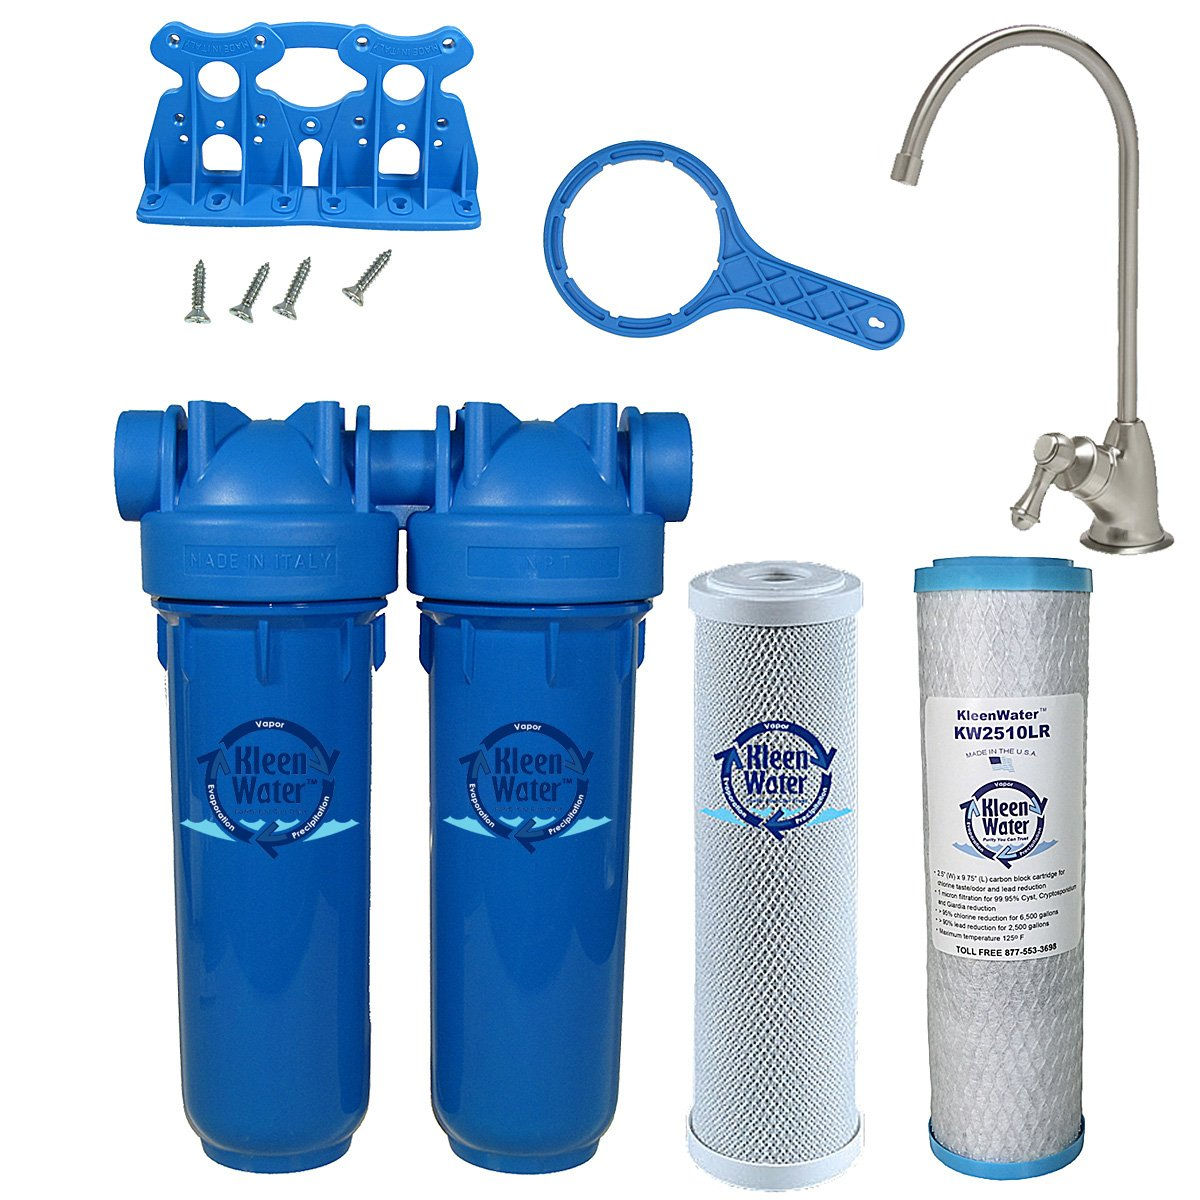 Chlorine Sediment Chloramine Lead Water Filter, KleenWater KW1000 Chemical Removal Under Sink Drinking Water Filtration System, Brushed Nickel Faucet, Two Filter Cartridges (Brushed Nickel) by KleenWater